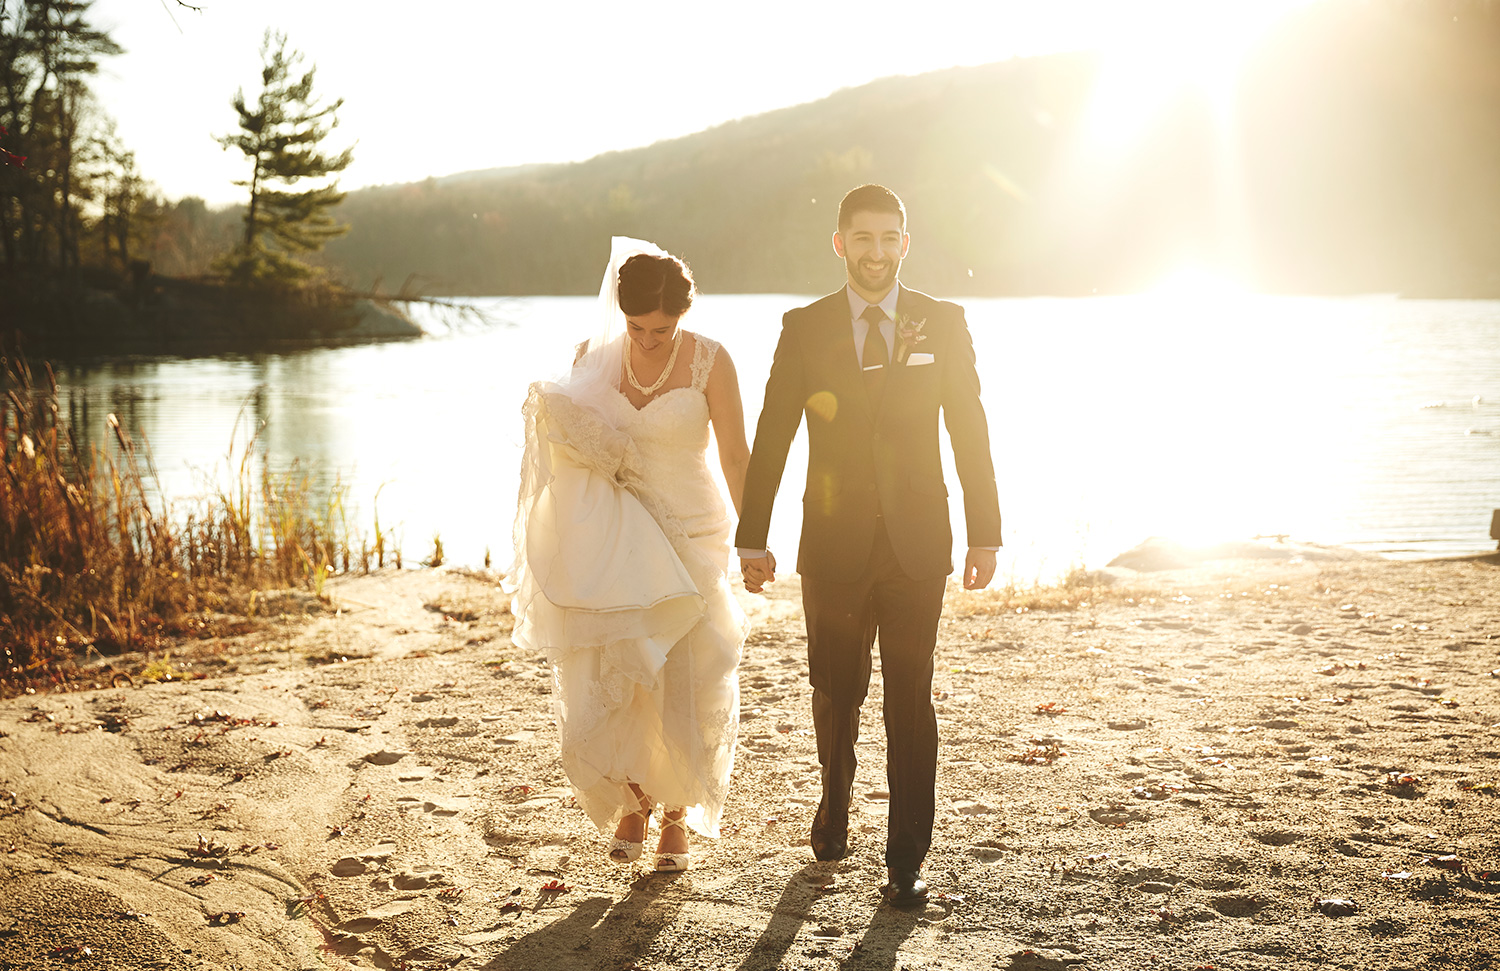 161119_ArrowParkLake&LodgeWedding_By_BriJohnsonWeddings_0098.jpg